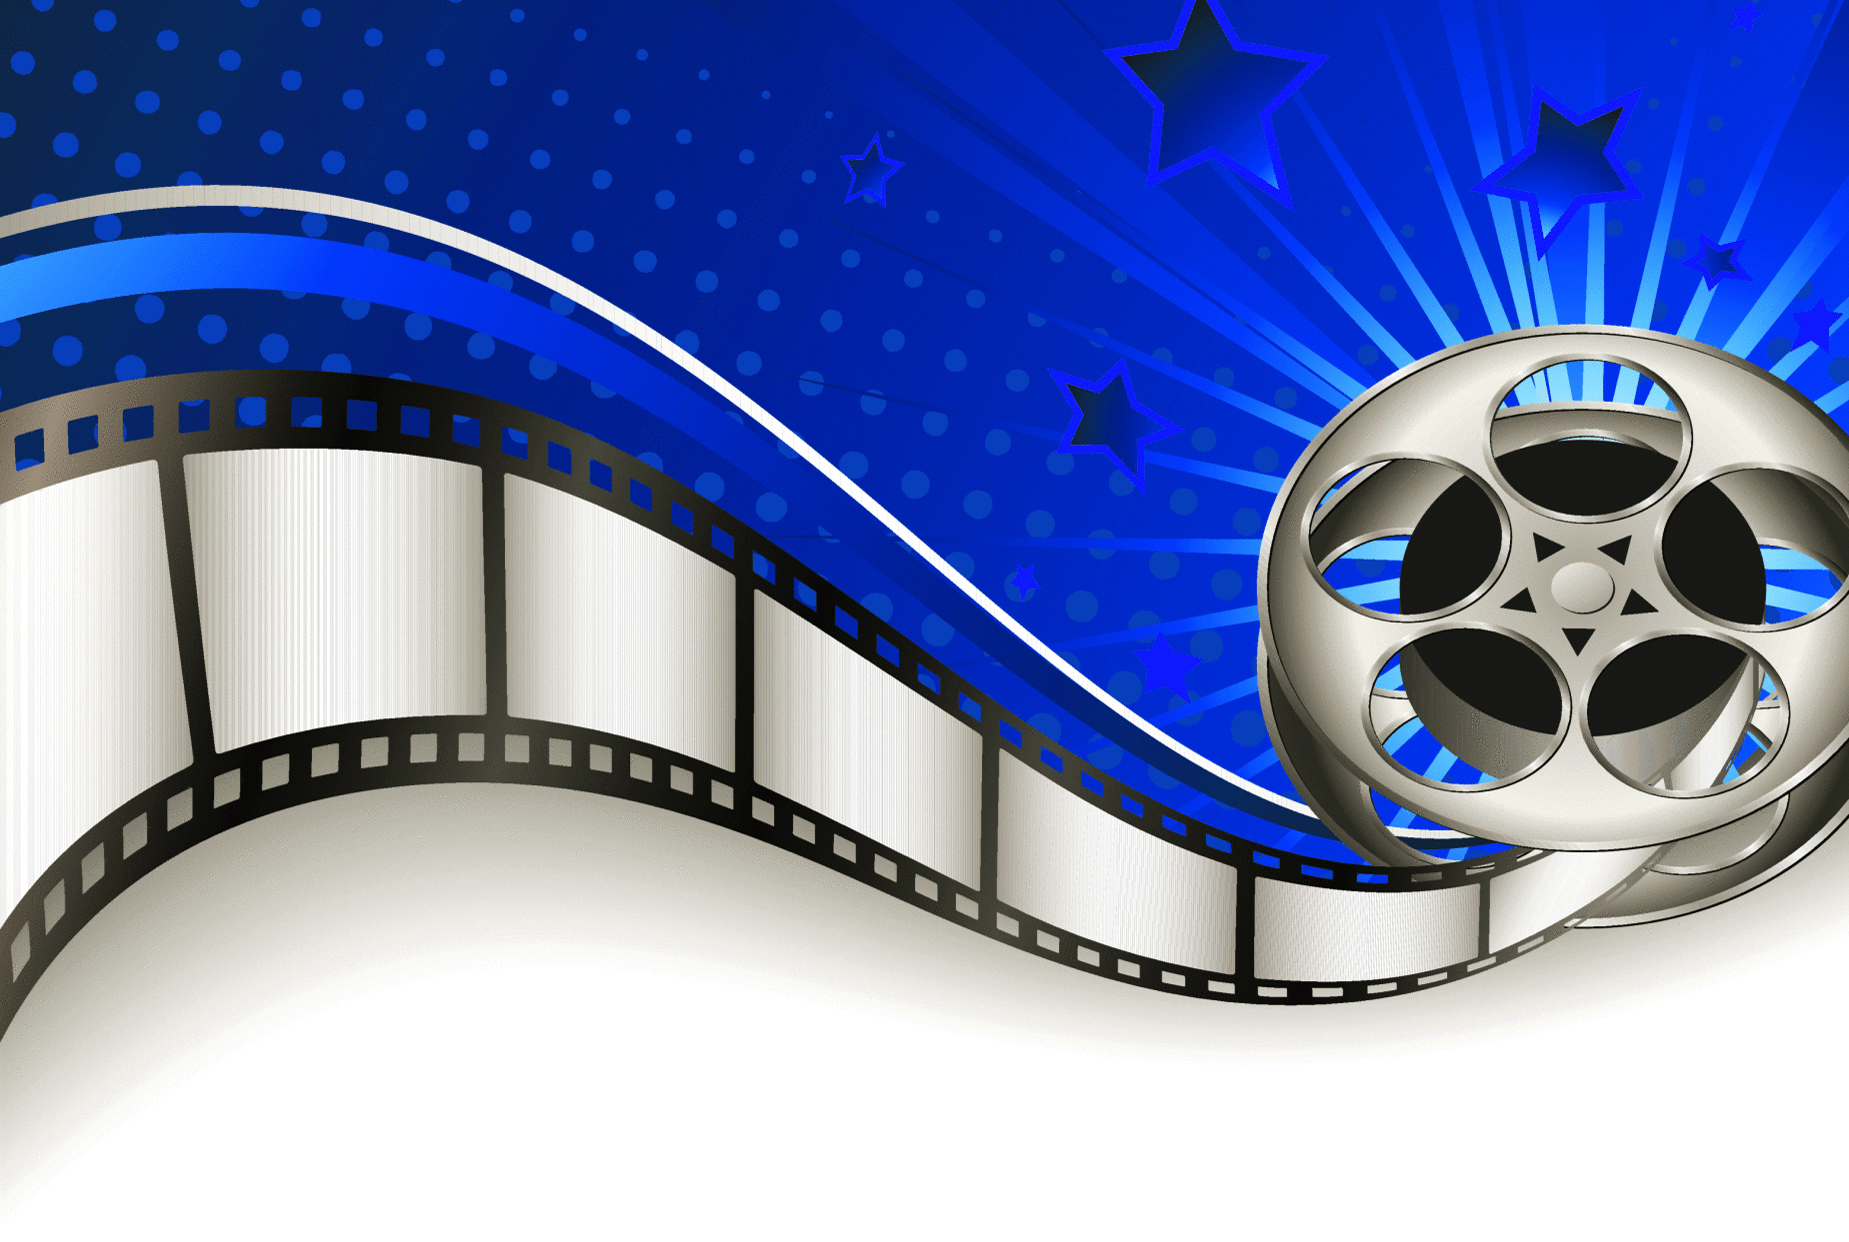 movie reel wallpaper border - photo #33